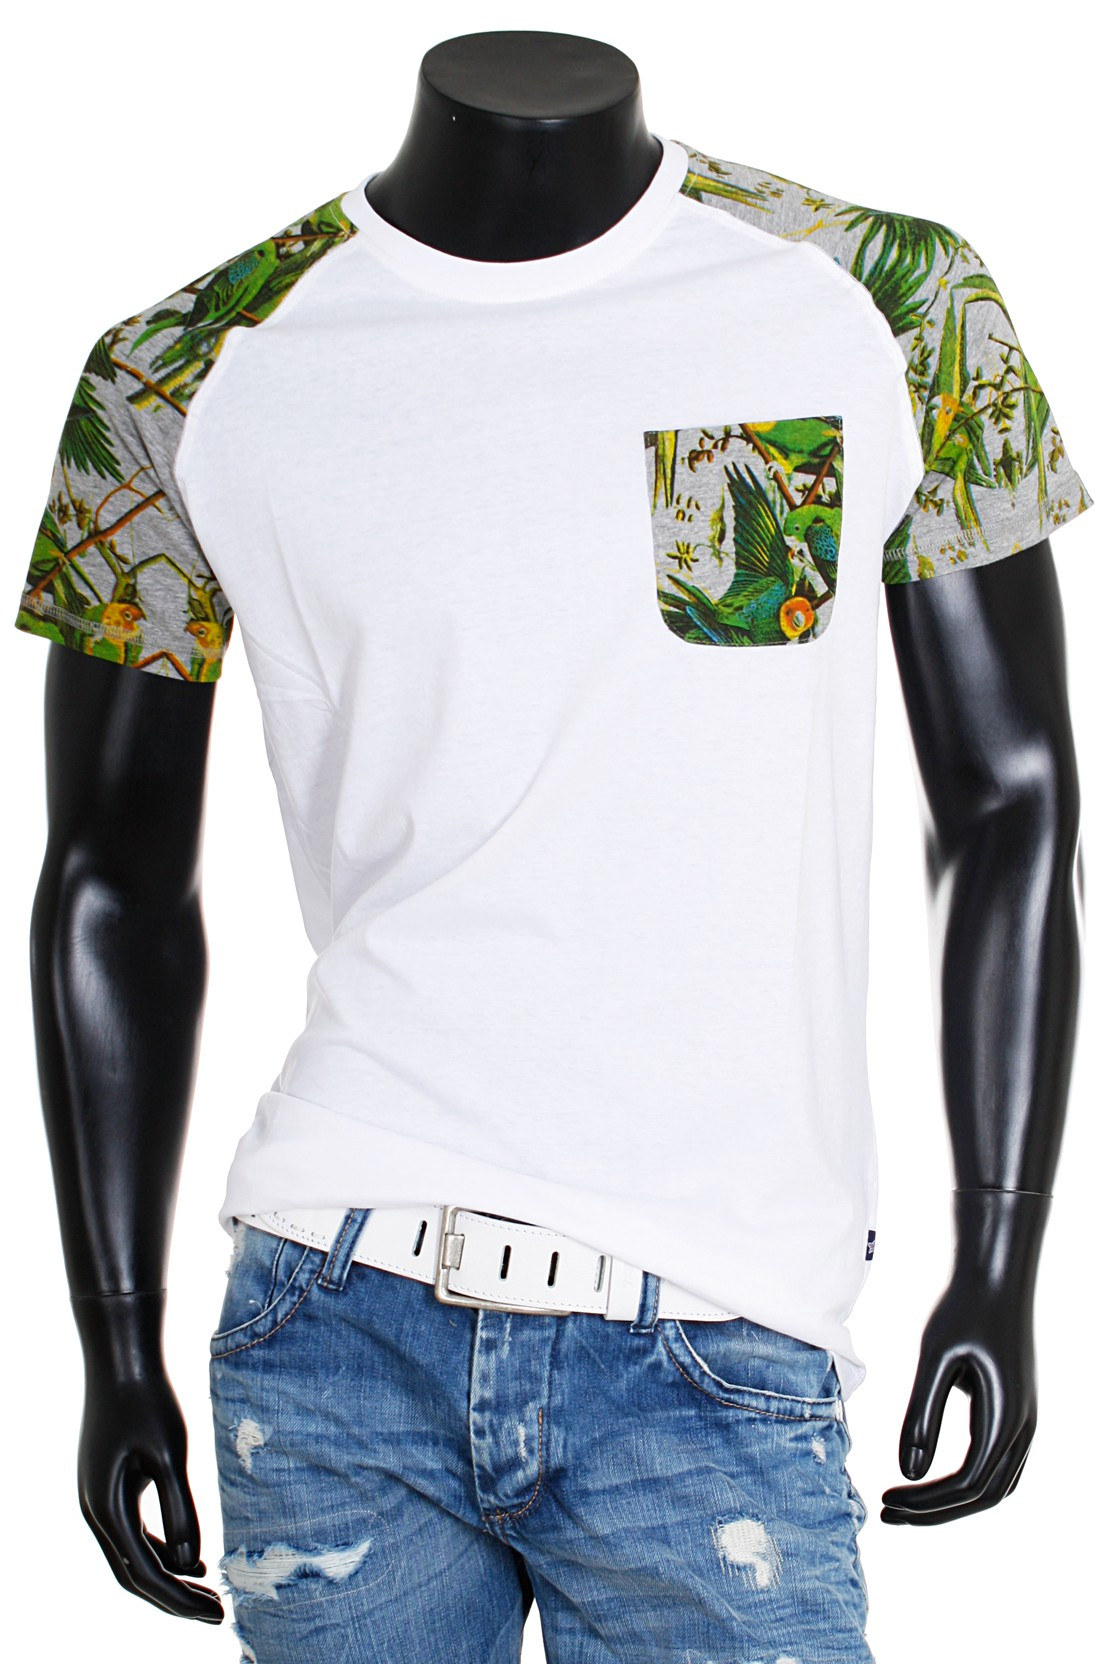 shine original herren rundhals t shirt party club kontrast flower blumen sommer paradies look. Black Bedroom Furniture Sets. Home Design Ideas